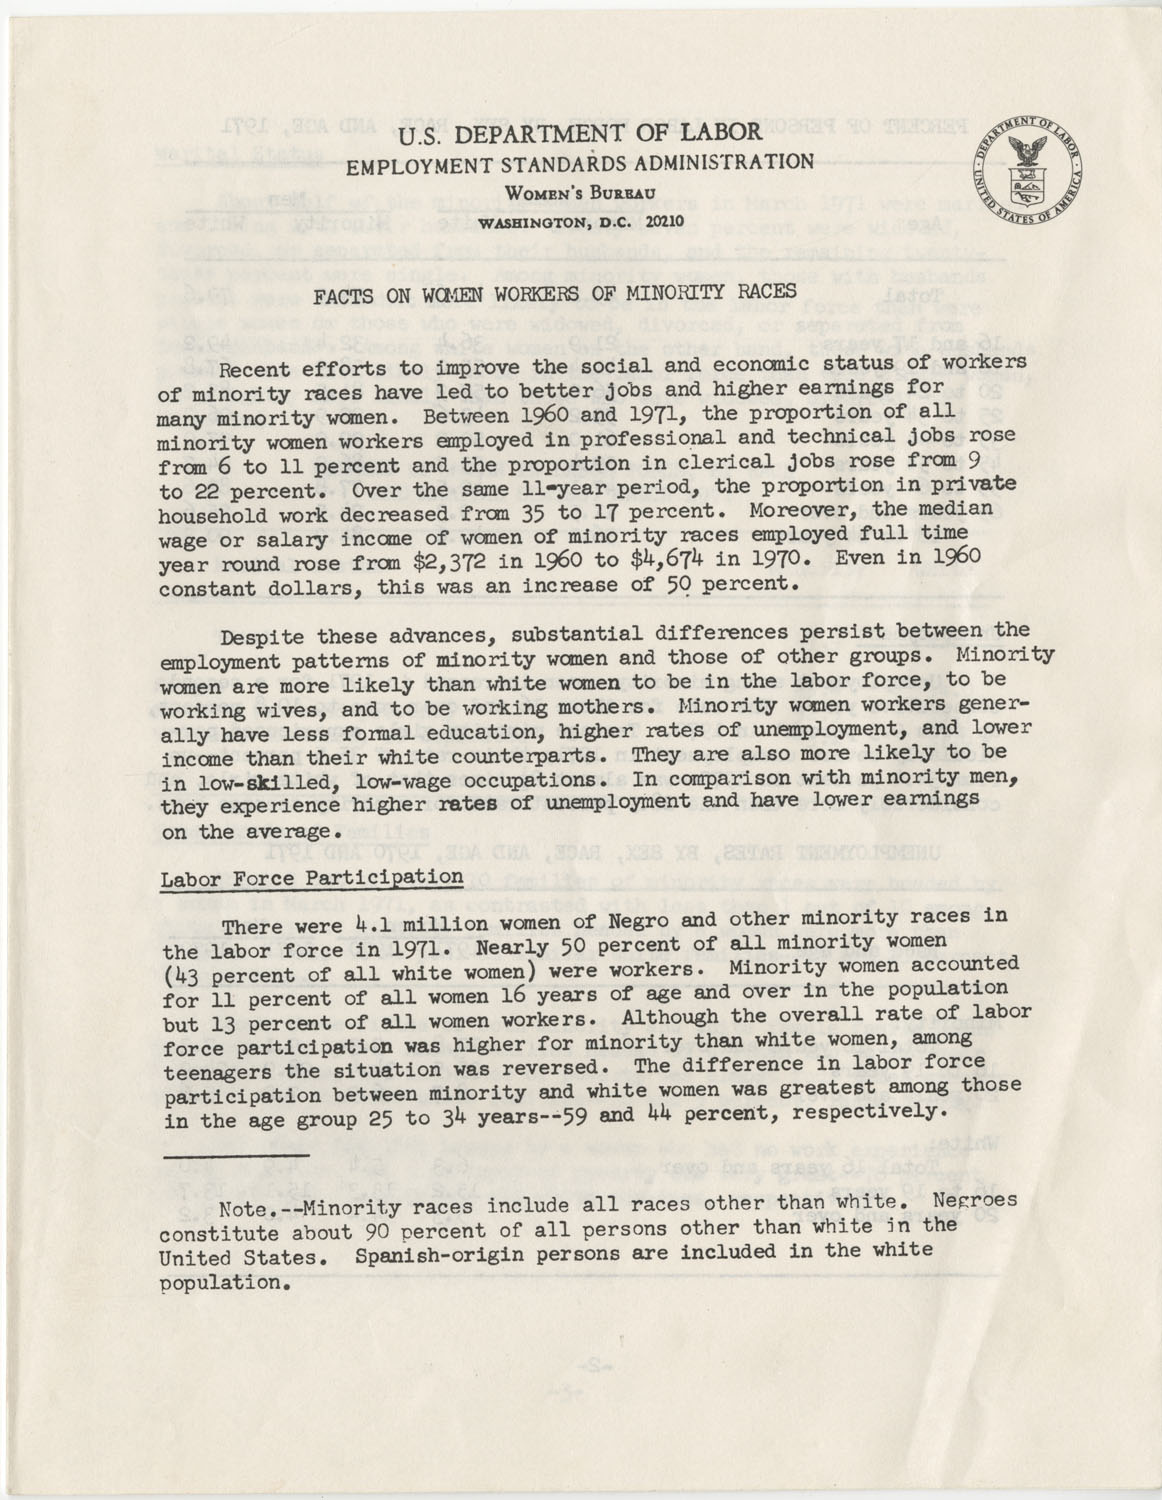 Facts on Women Workers of Minority Races, U.S. Department of Labor, June 1972, Page 1